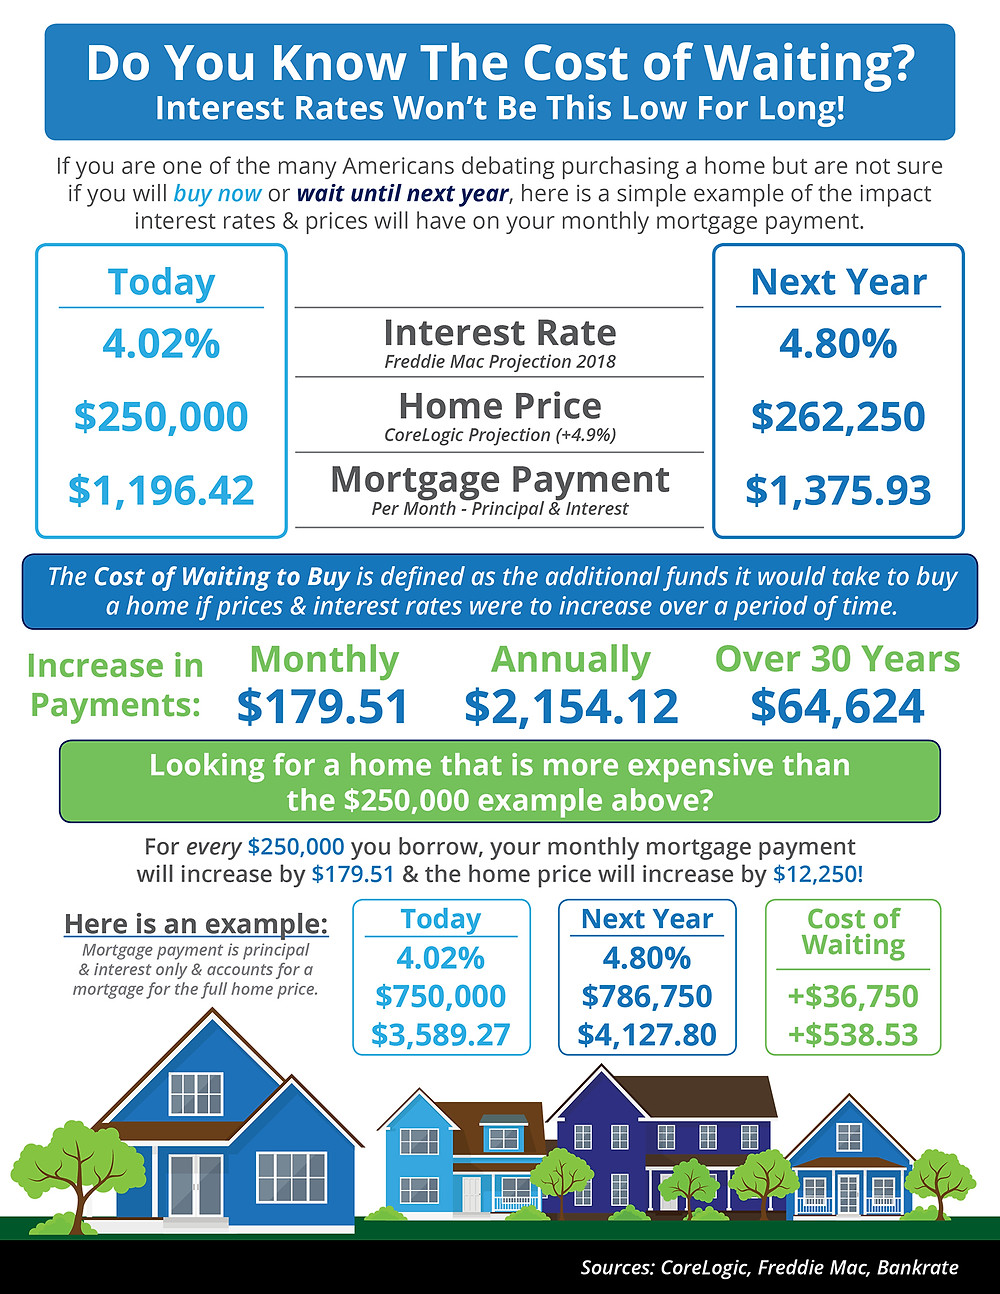 Do You Know the Cost of Waiting? [INFOGRAPHIC] | Simplifying The Market